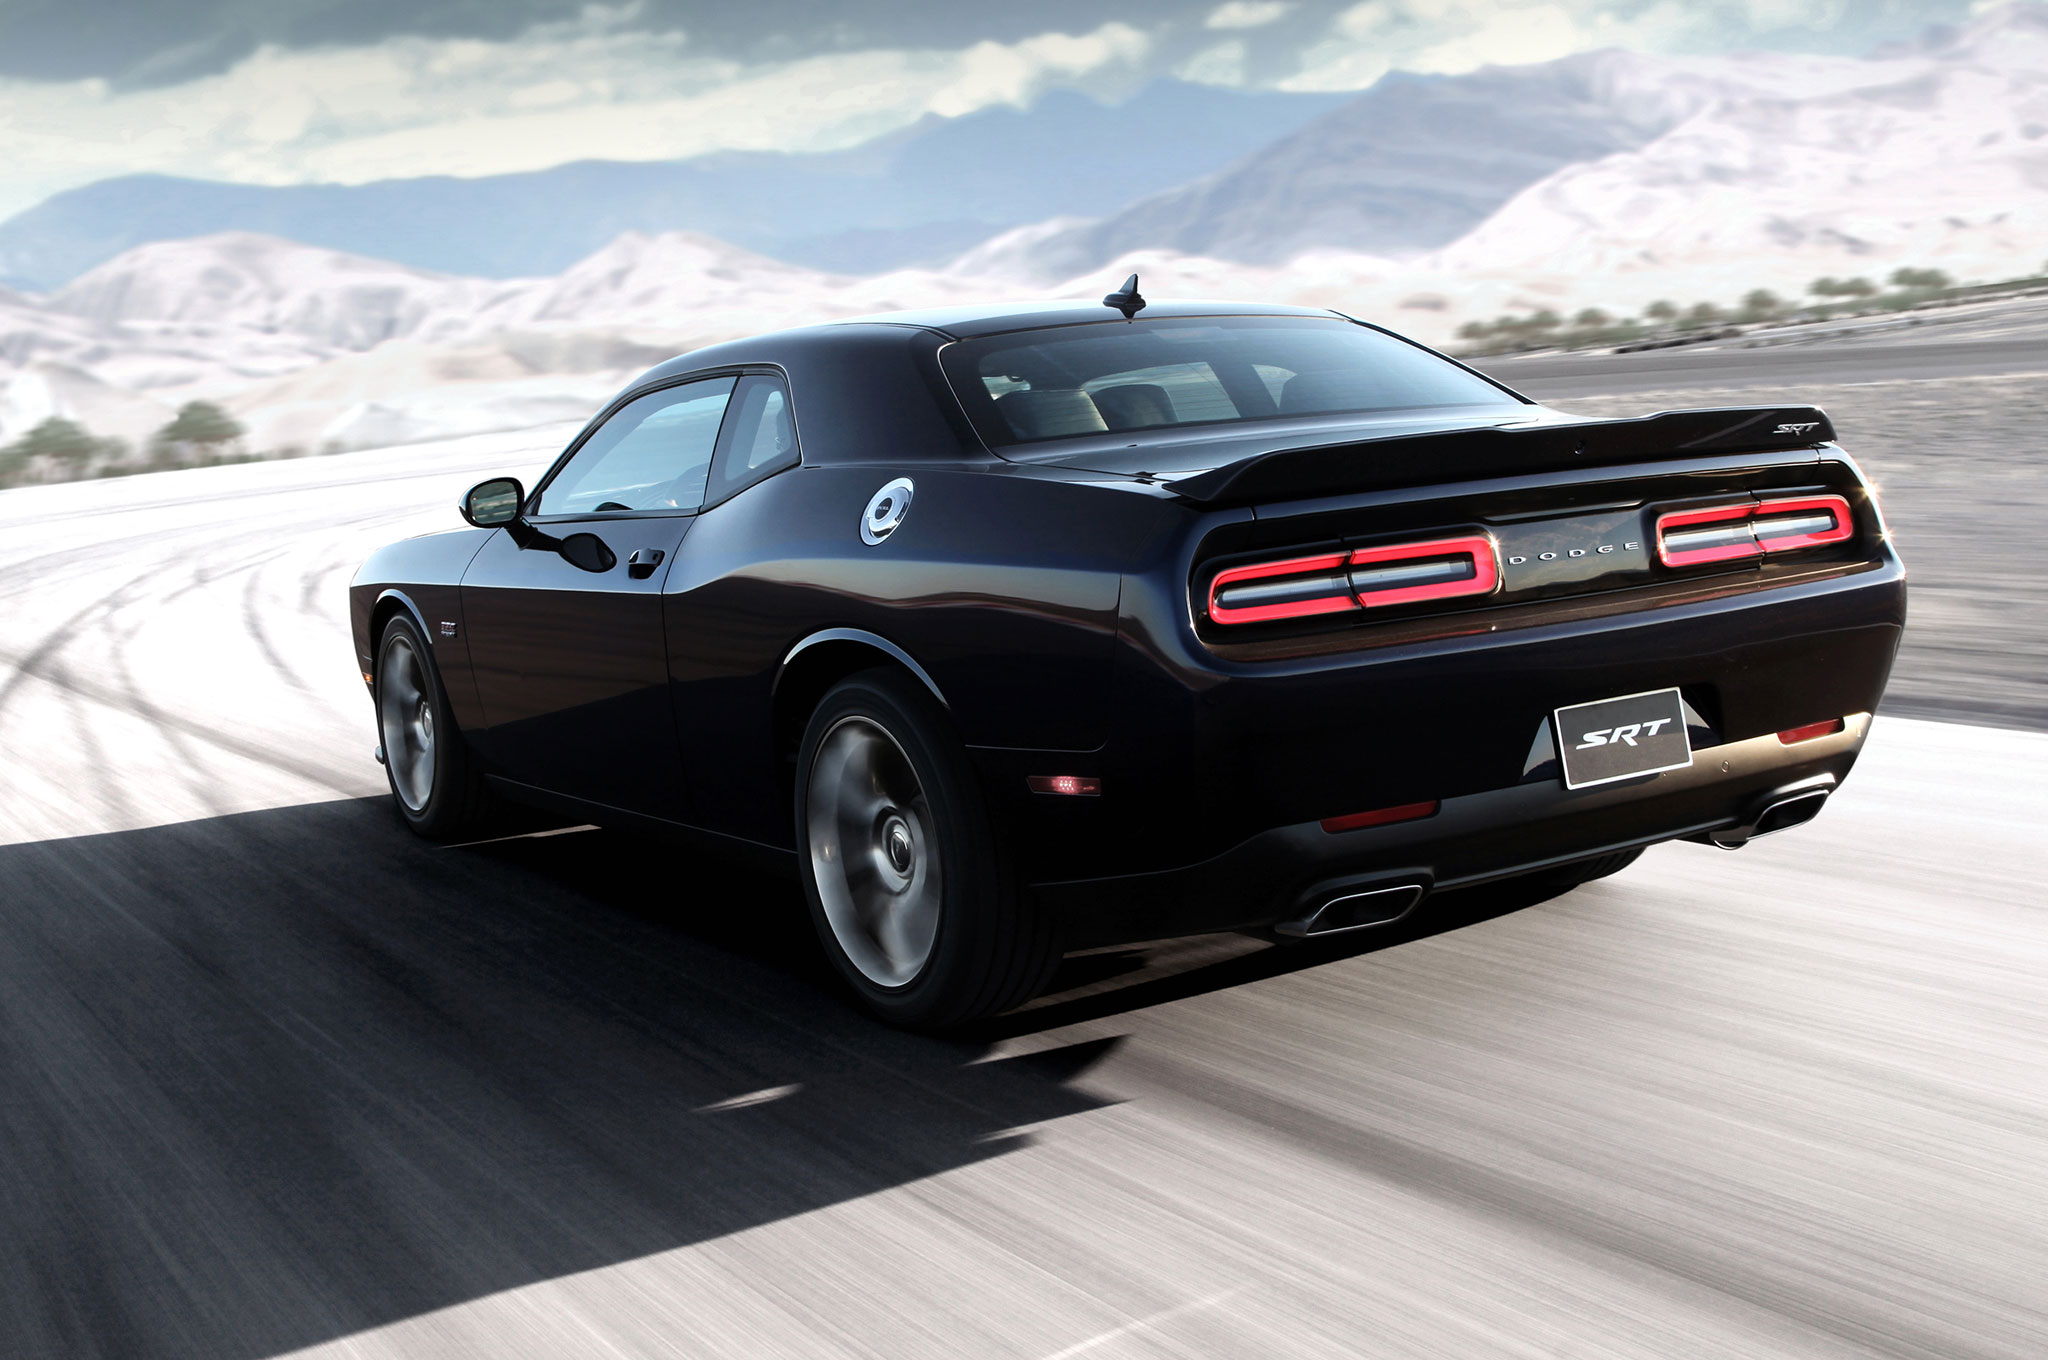 2015 Dodge Challenger Adds 600 Plus Hp Supercharged Engine